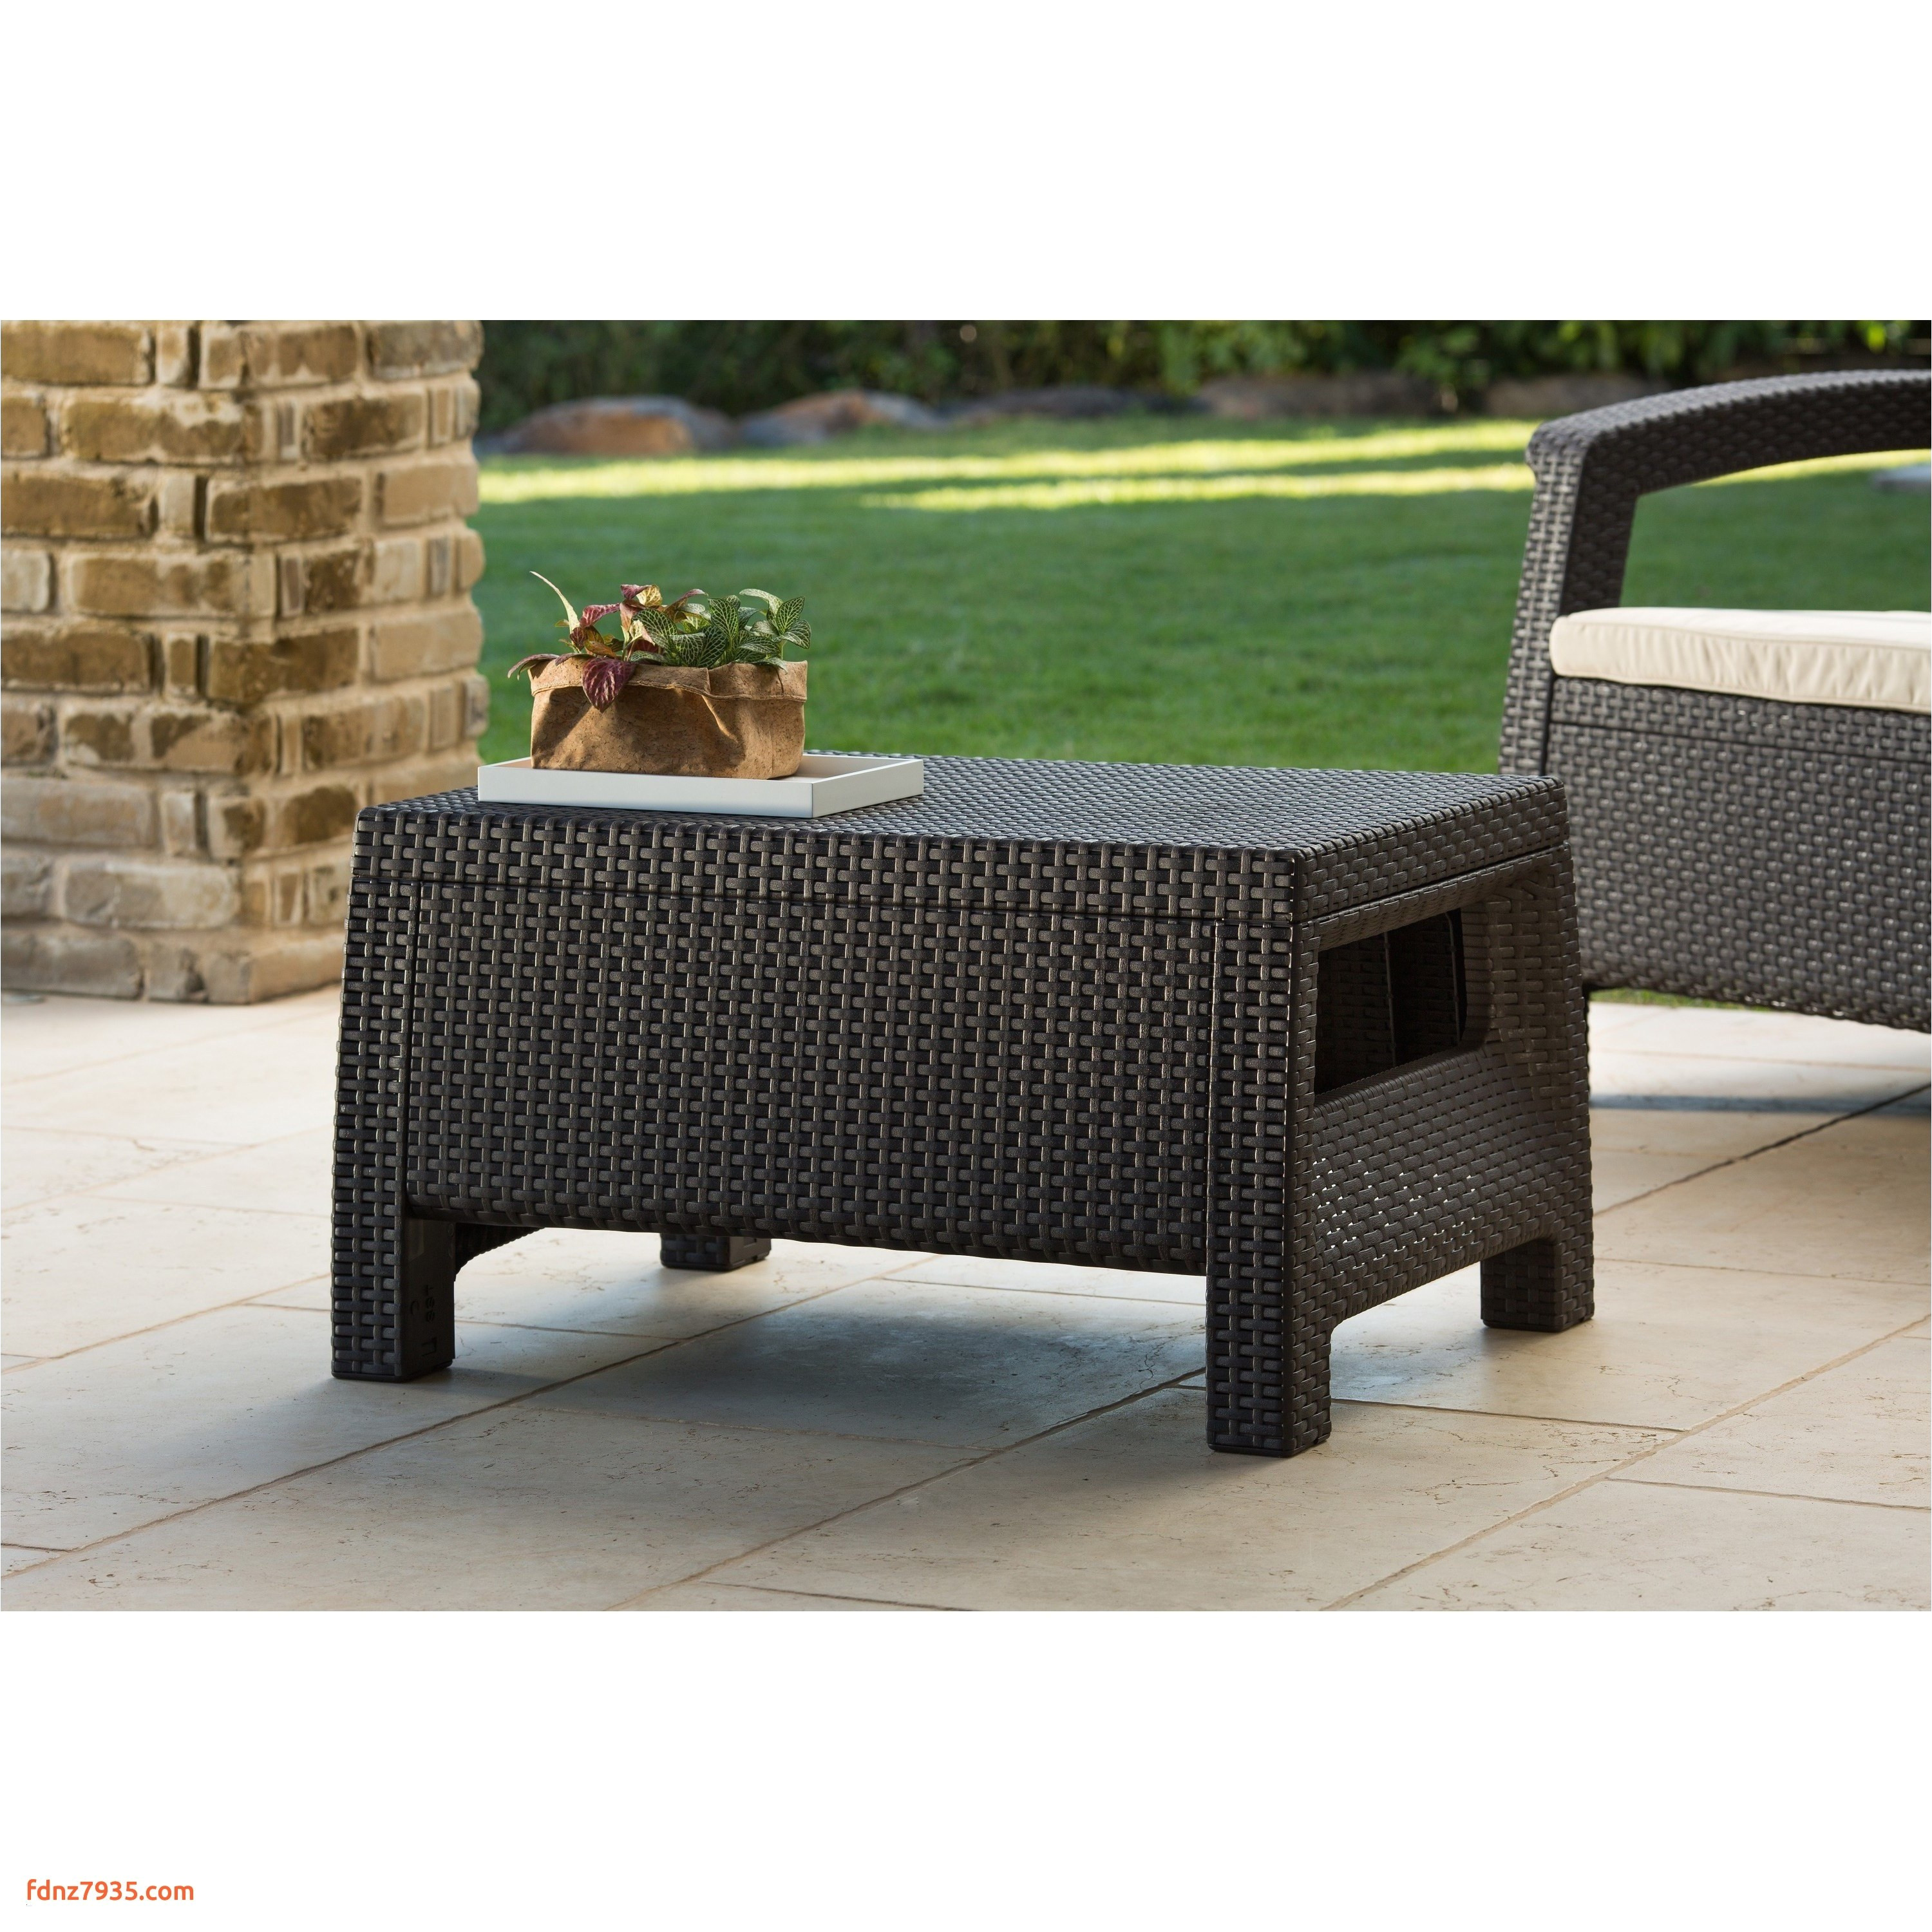 patio sectional furniture unique wicker outdoor sofa 0d patio chairs design outdoor patio furniture sets